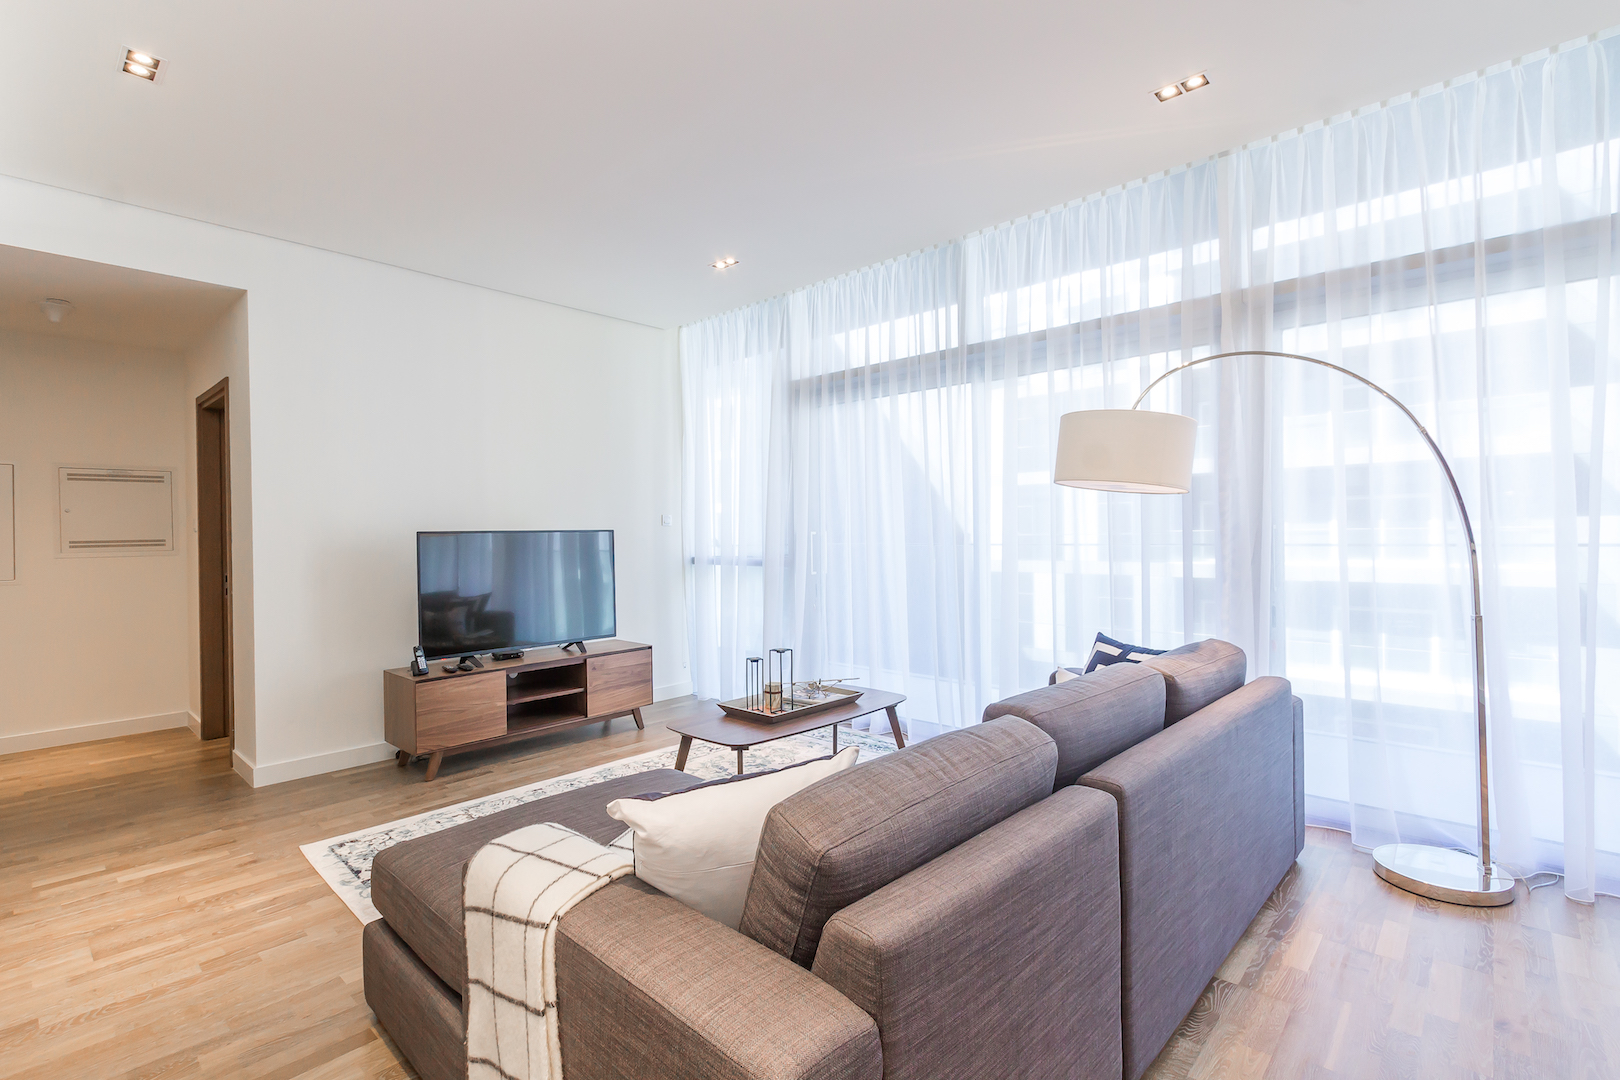 Live Like How You Want, Yet Affordable 1 Bed in City Walk #303 Bldg 22 photo 21763601